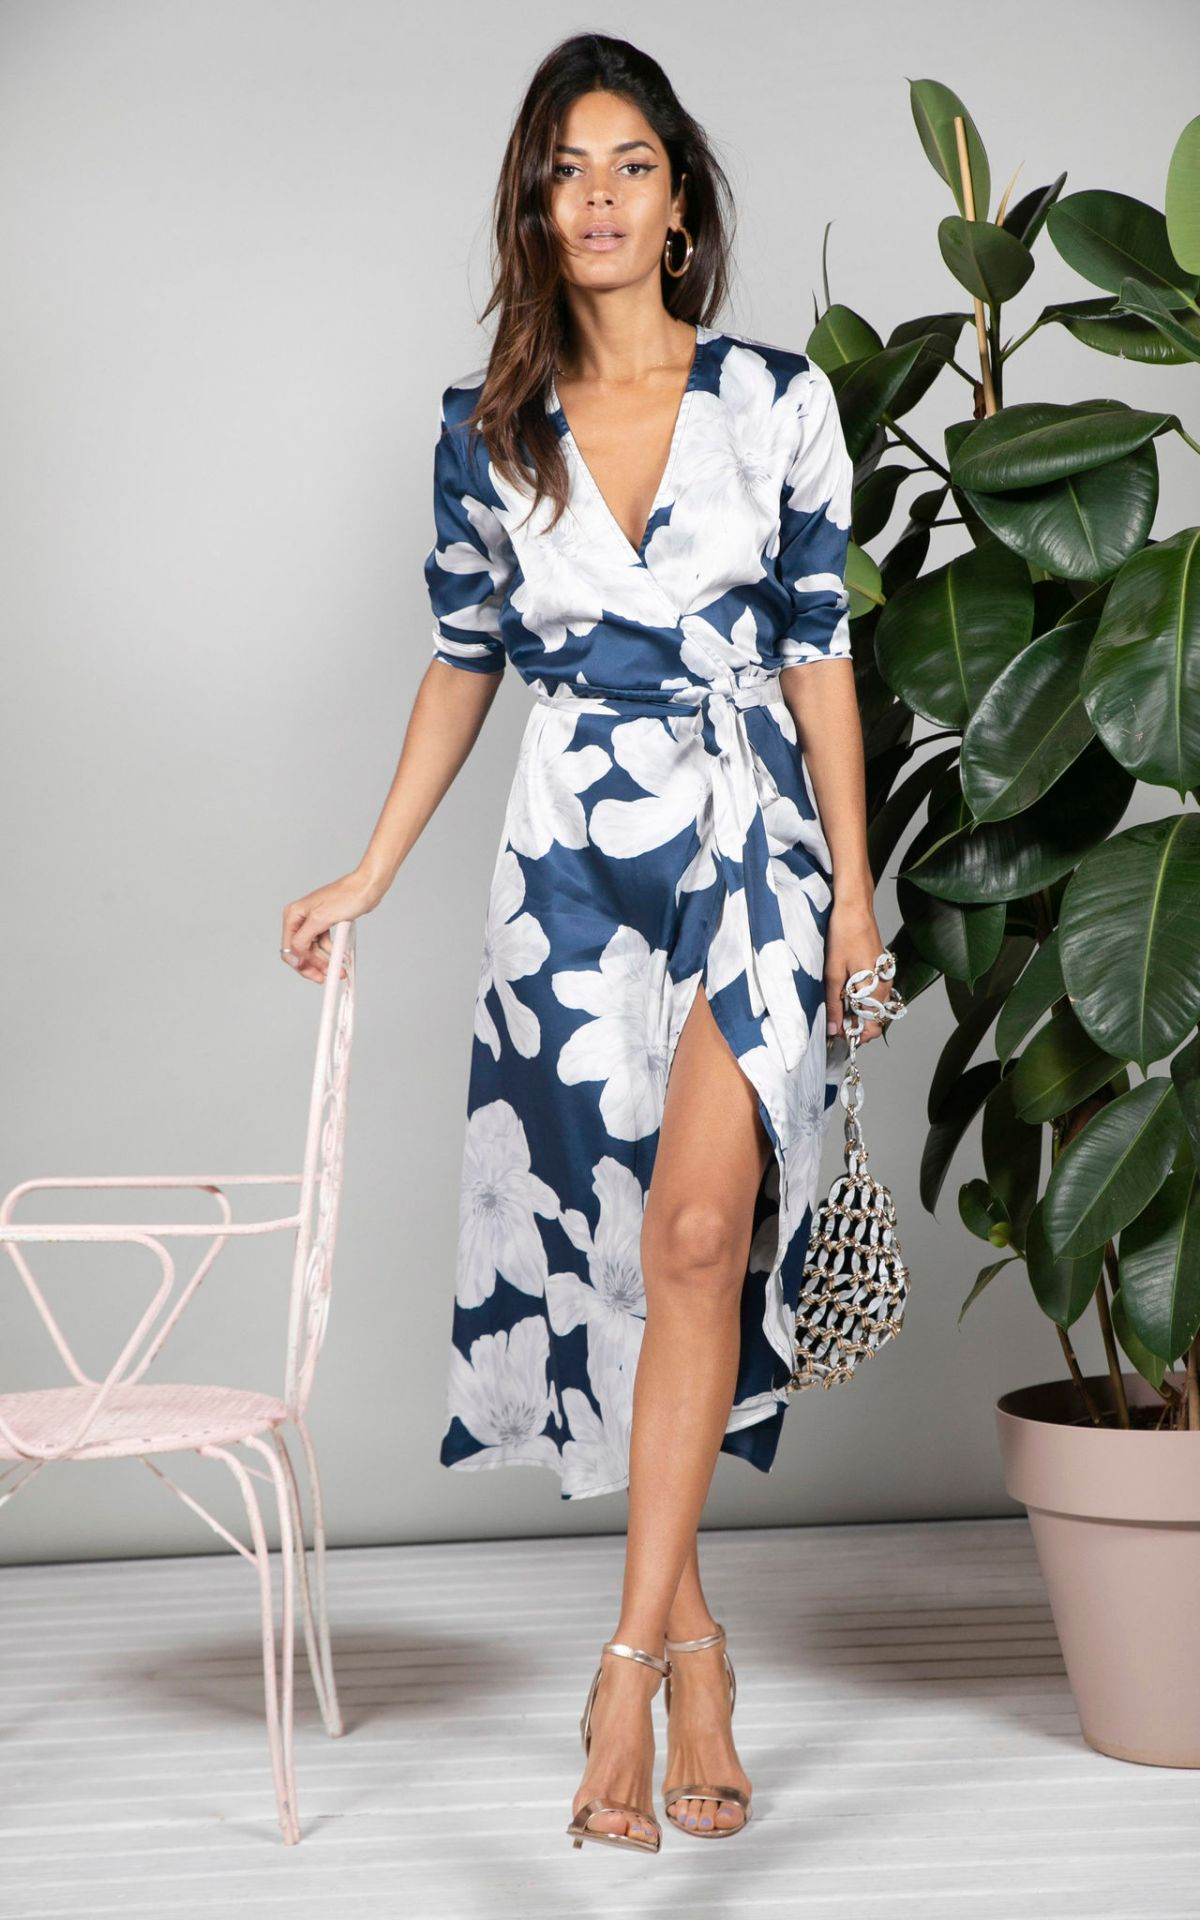 What to Wear to a Wedding: 5 Wedding Guest Outfit Ideas